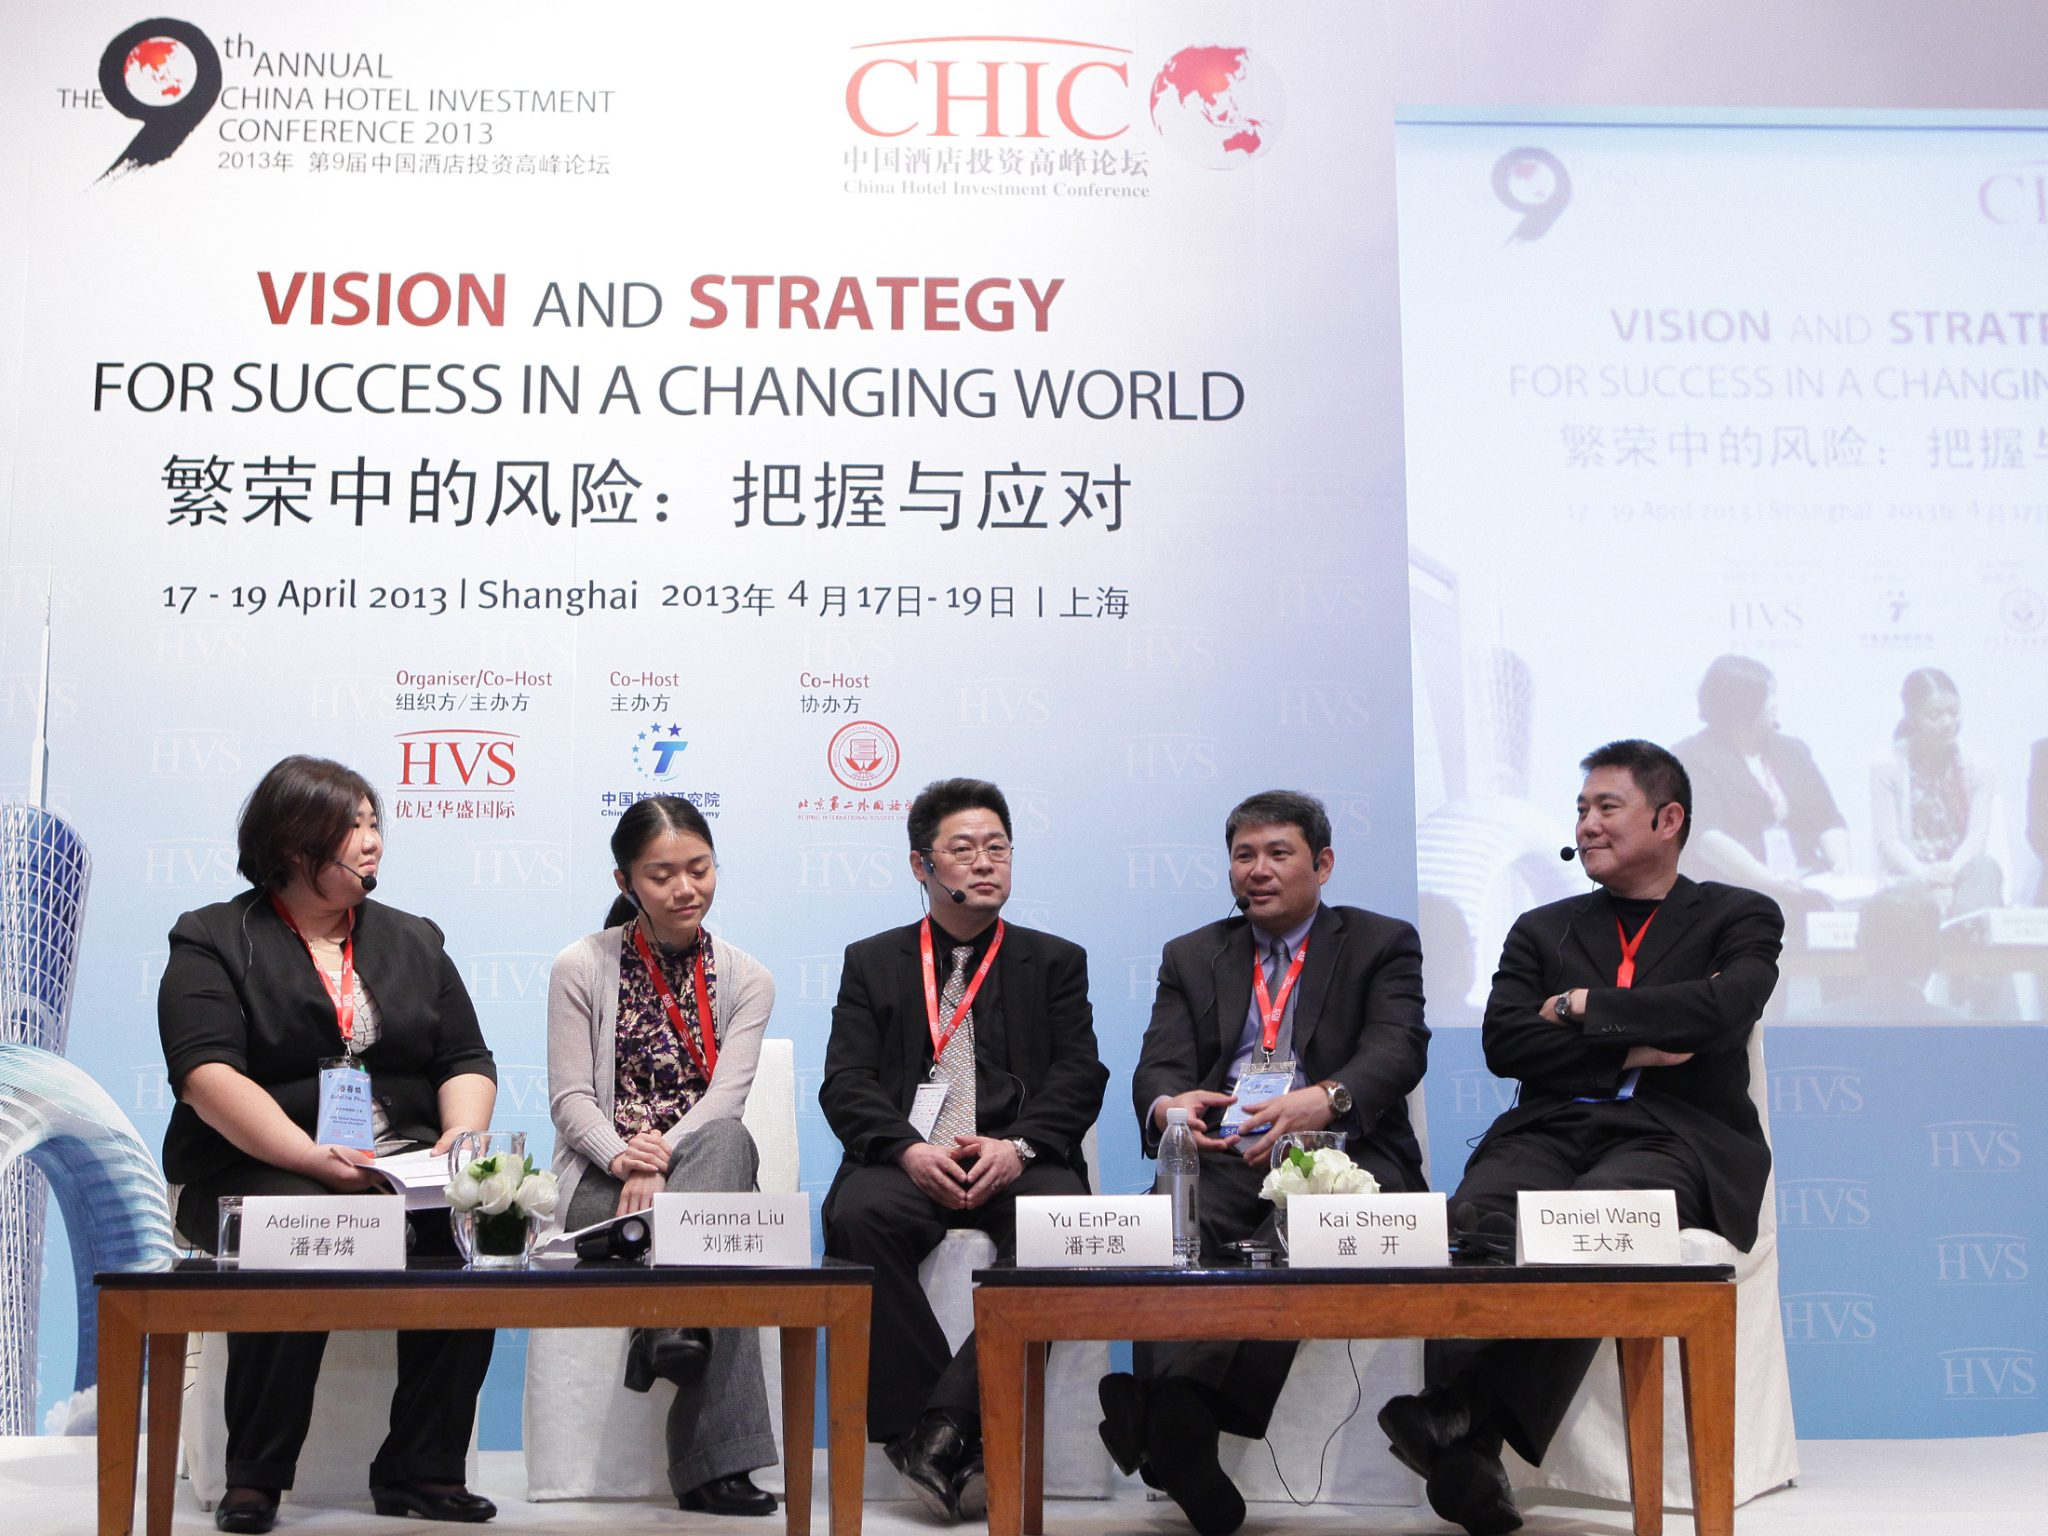 Mr. Kai Sheng, CEO of Archillier Architecture, was invited as a panel speaker of CHIC 2013.